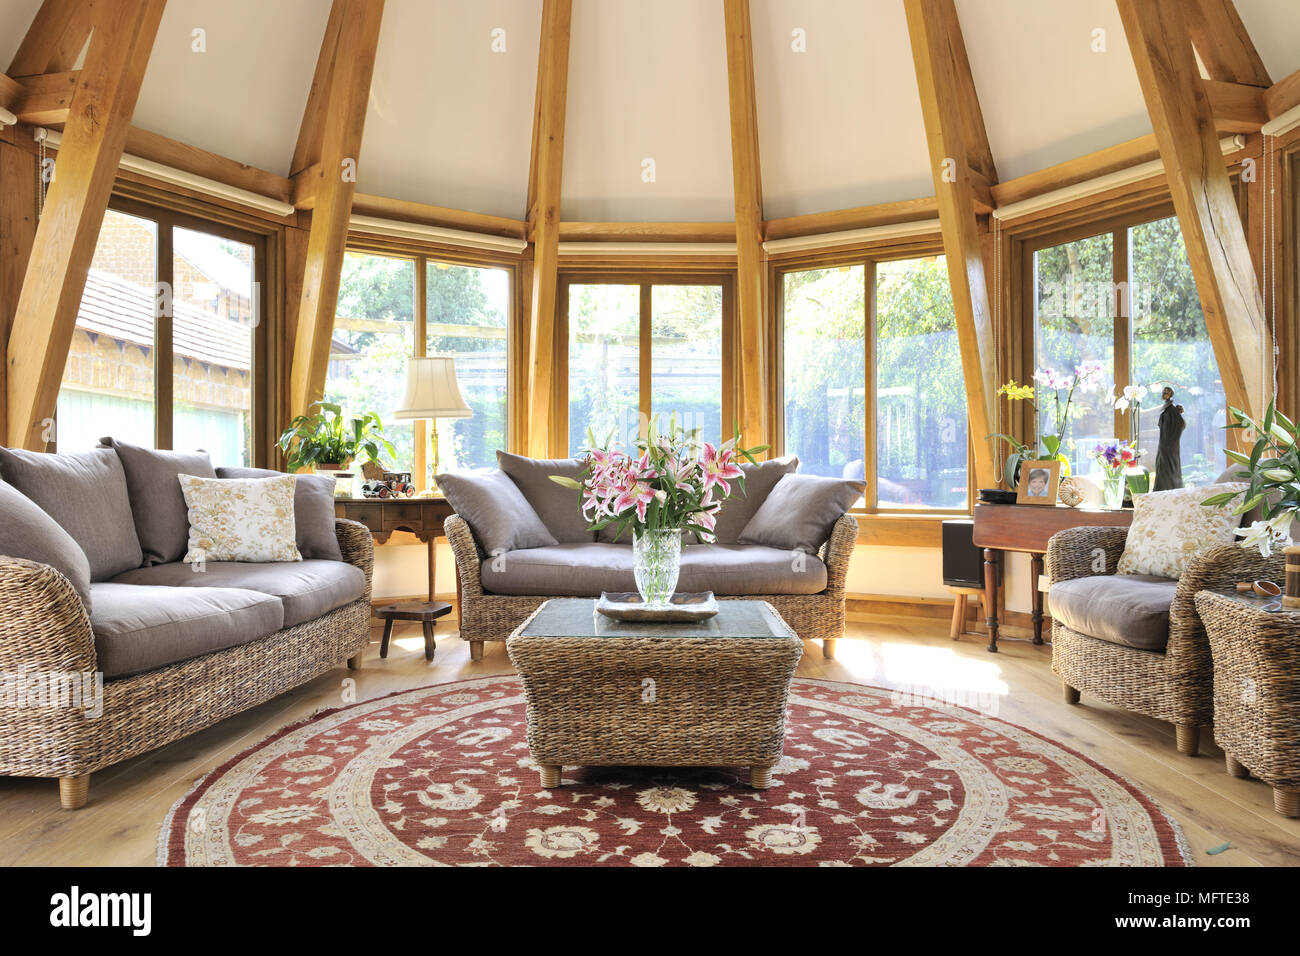 Wohnzimmer Modern Country Priors Marsten Stock Photos Priors Marsten Stock Images Alamy